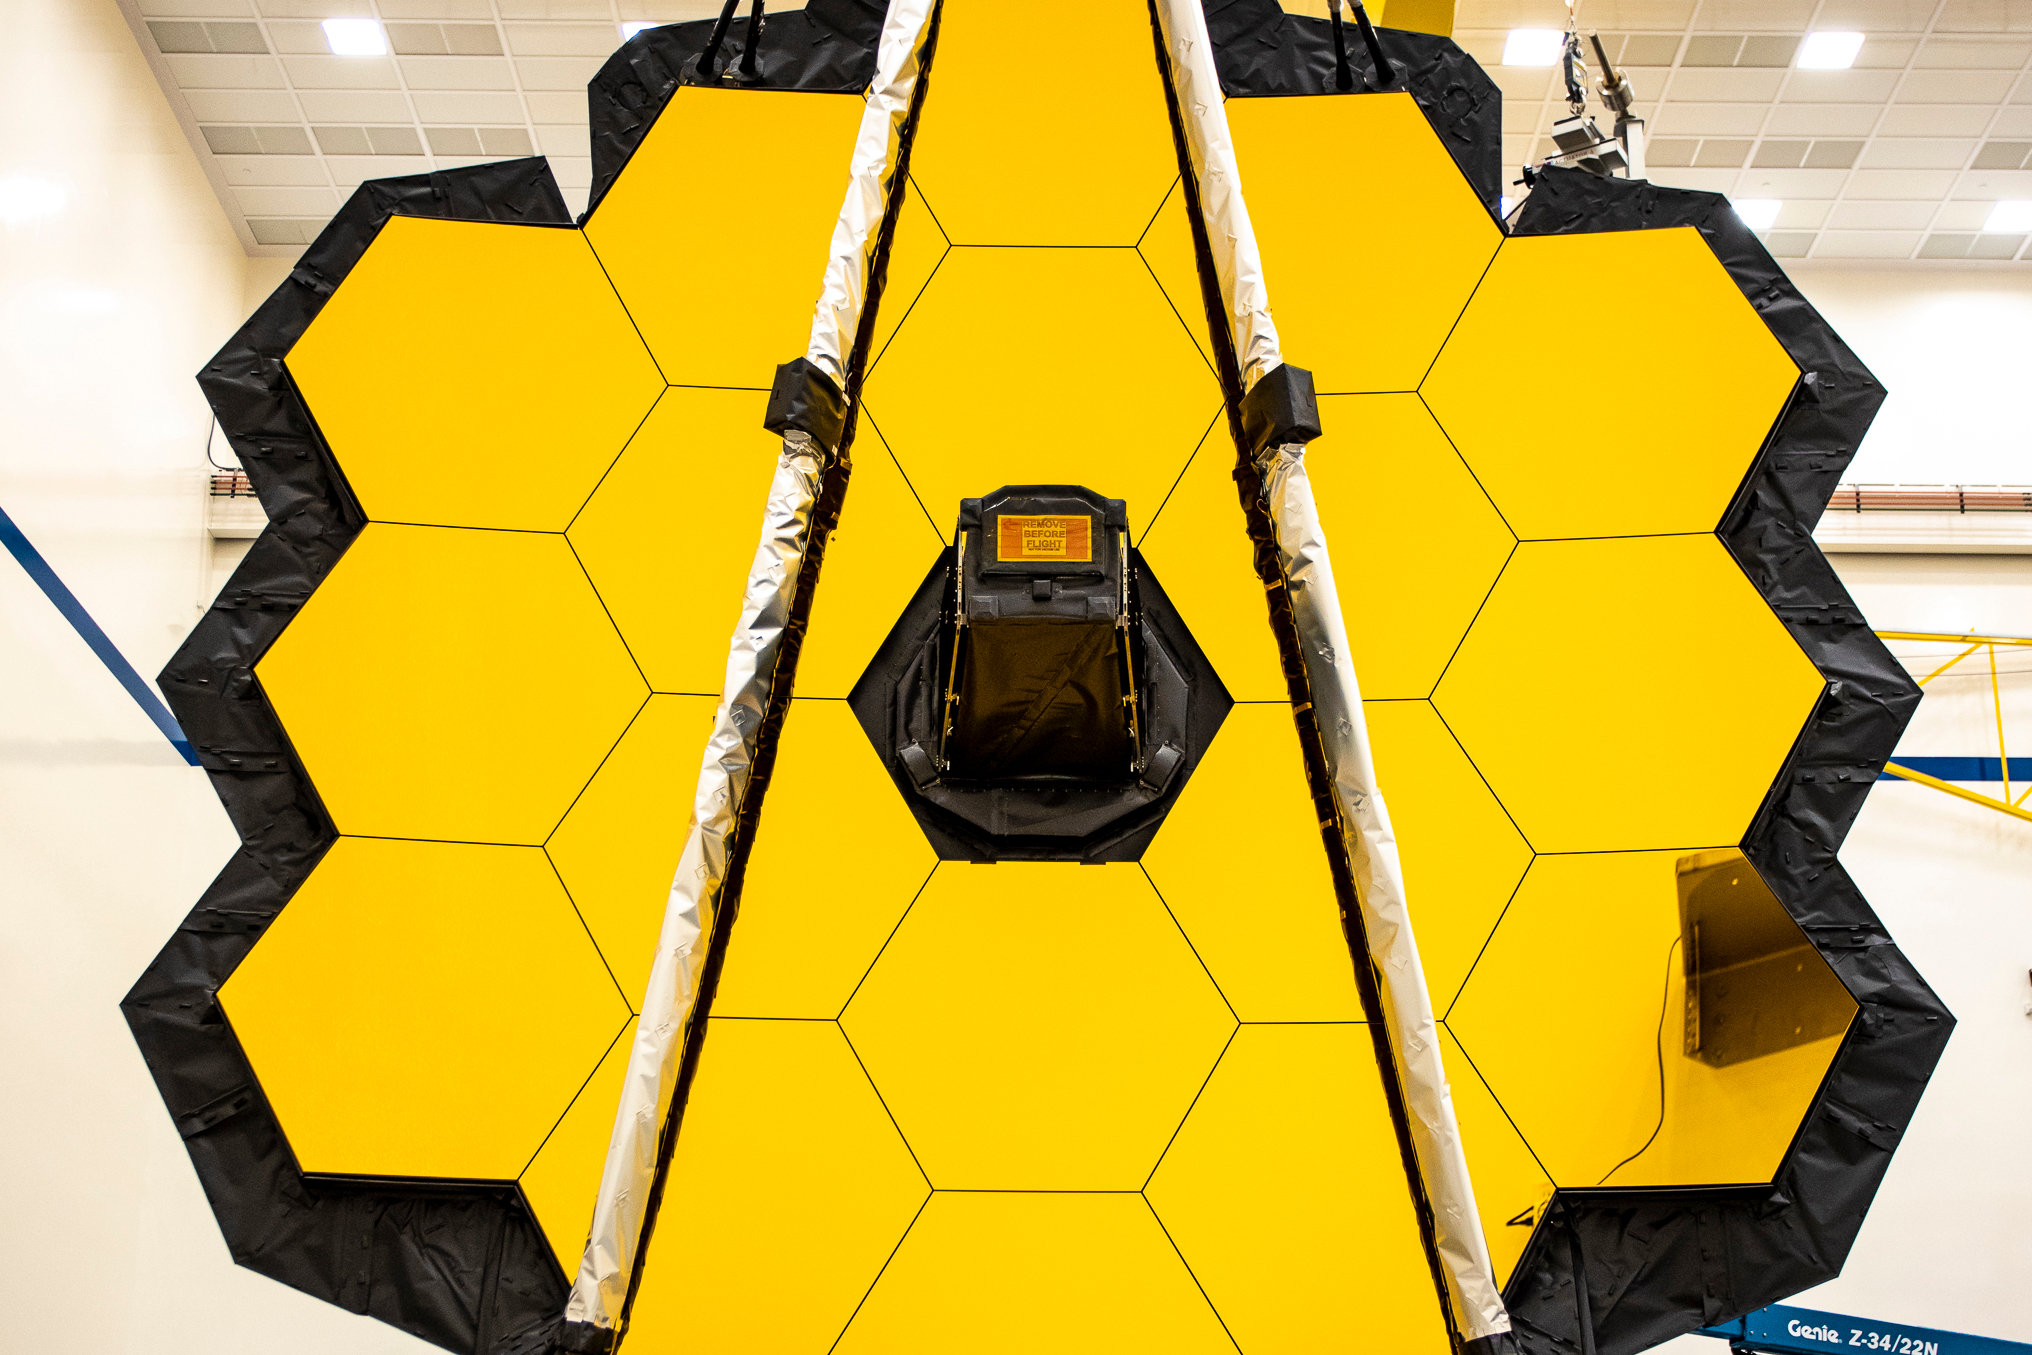 Successful tower extension test for James Webb space telescope